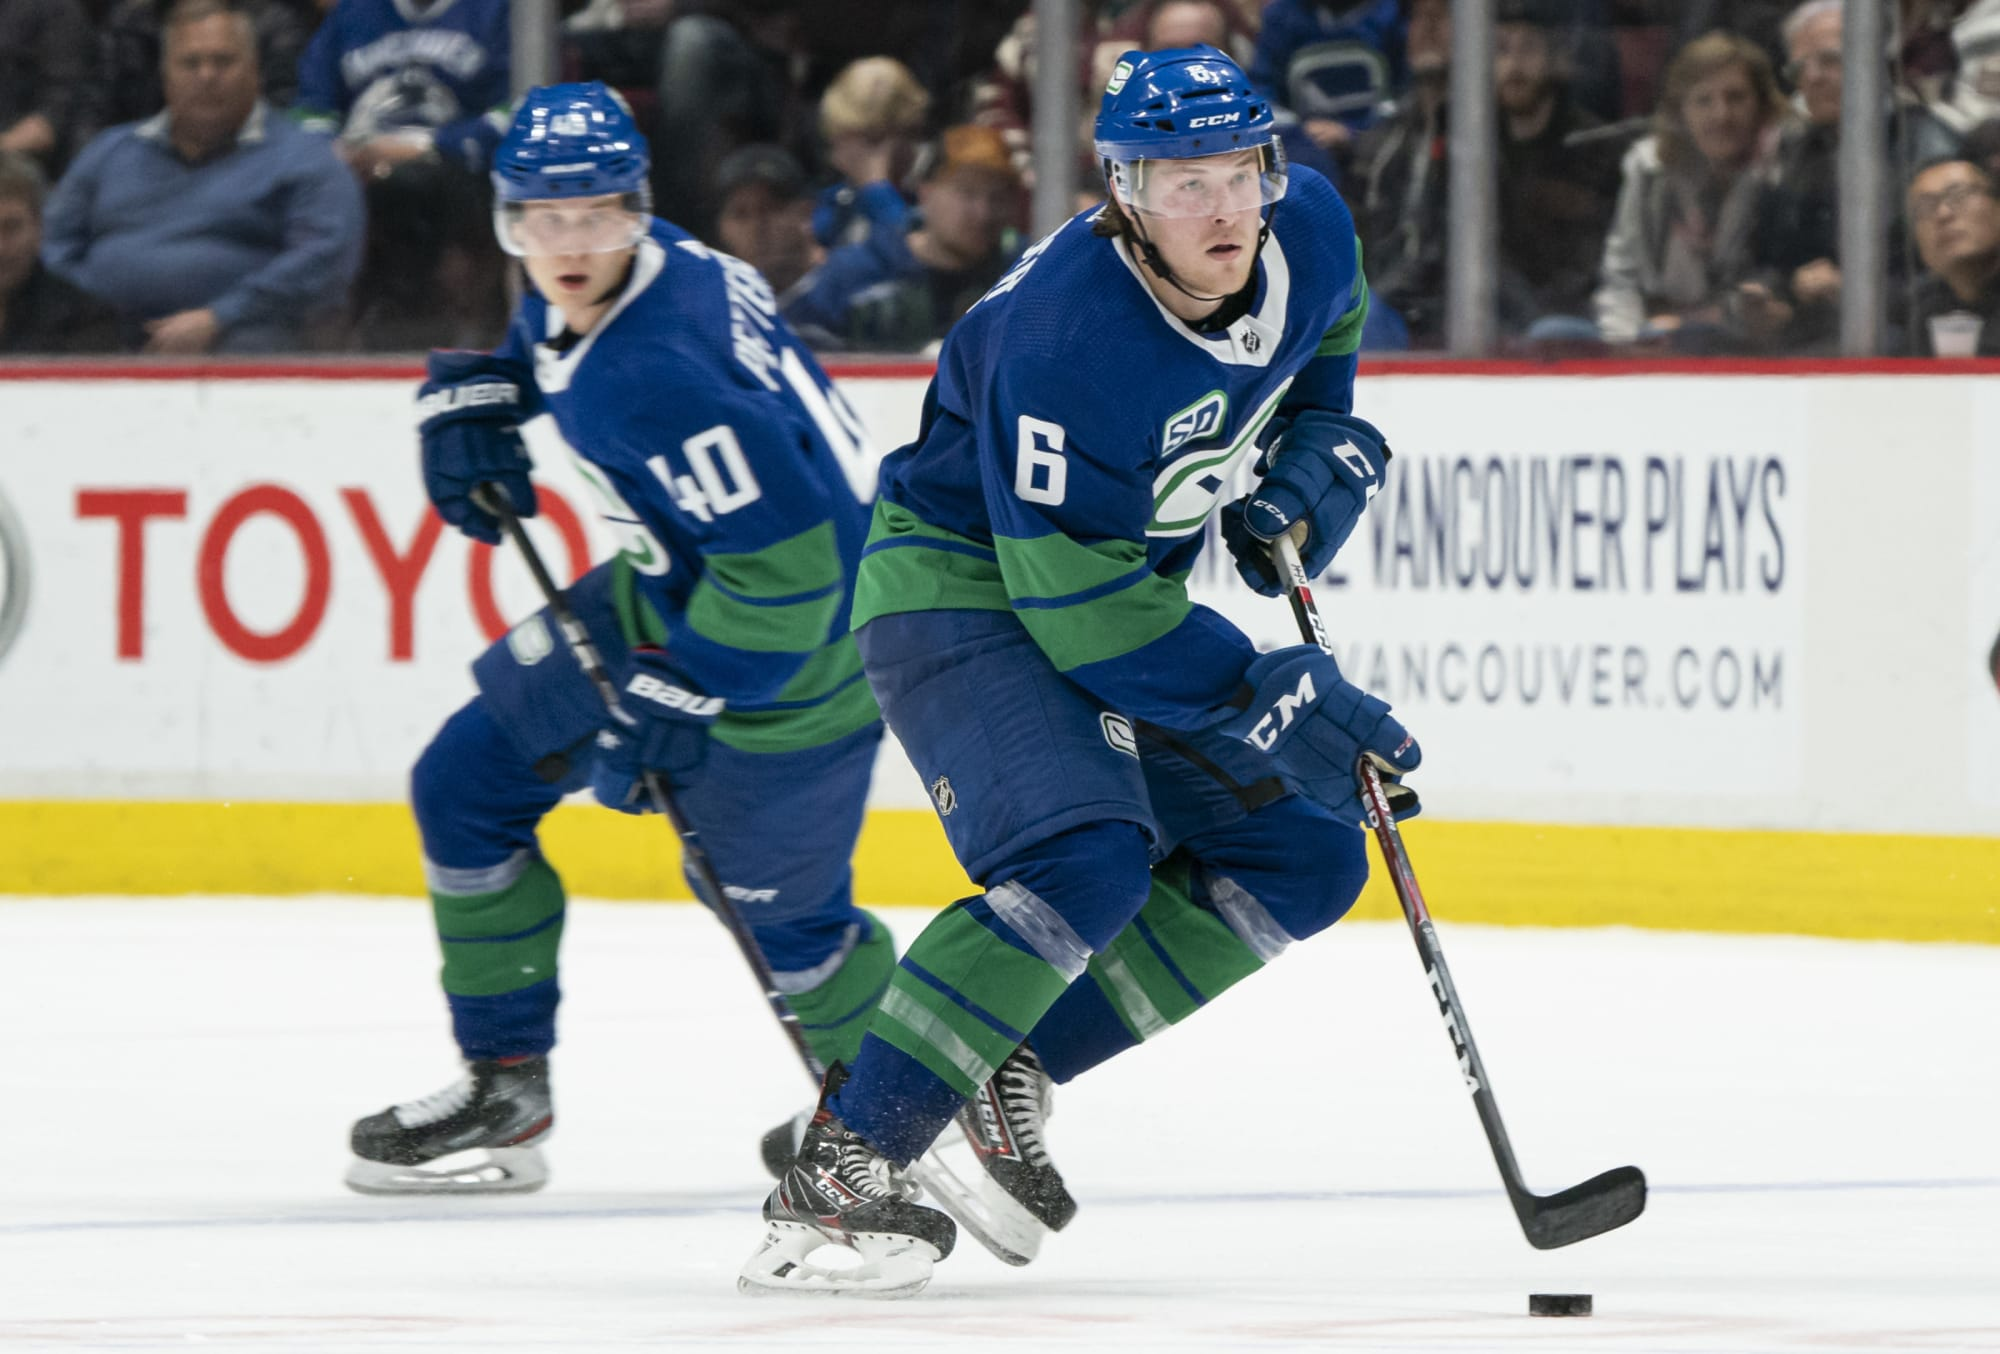 Canucks: Elias Pettersson and Brock Boeser return to Rogers Arena